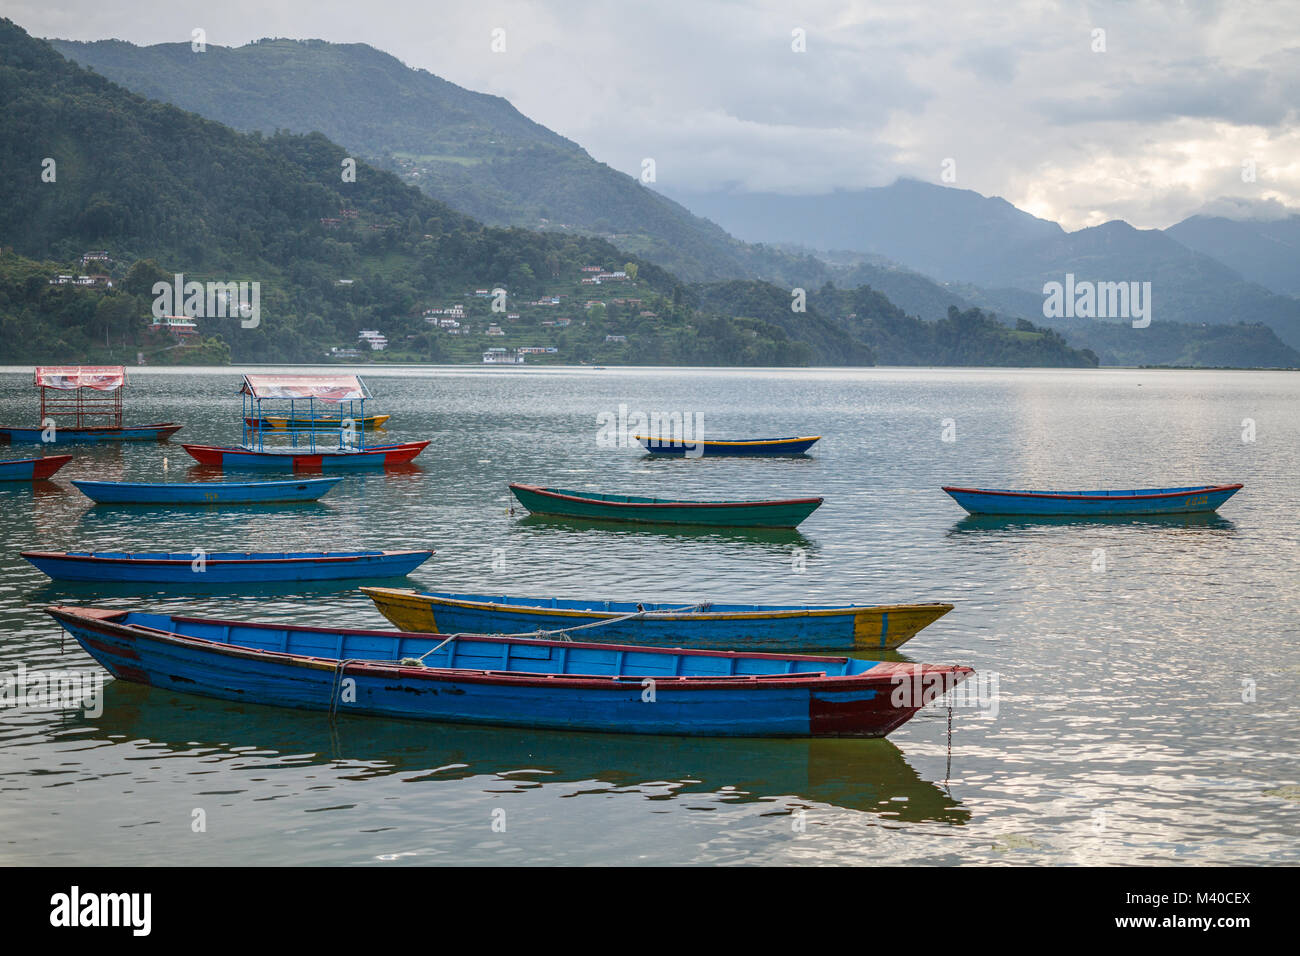 Colorful boats on Phewa Lake, Pokhara, Nepal - Stock Image